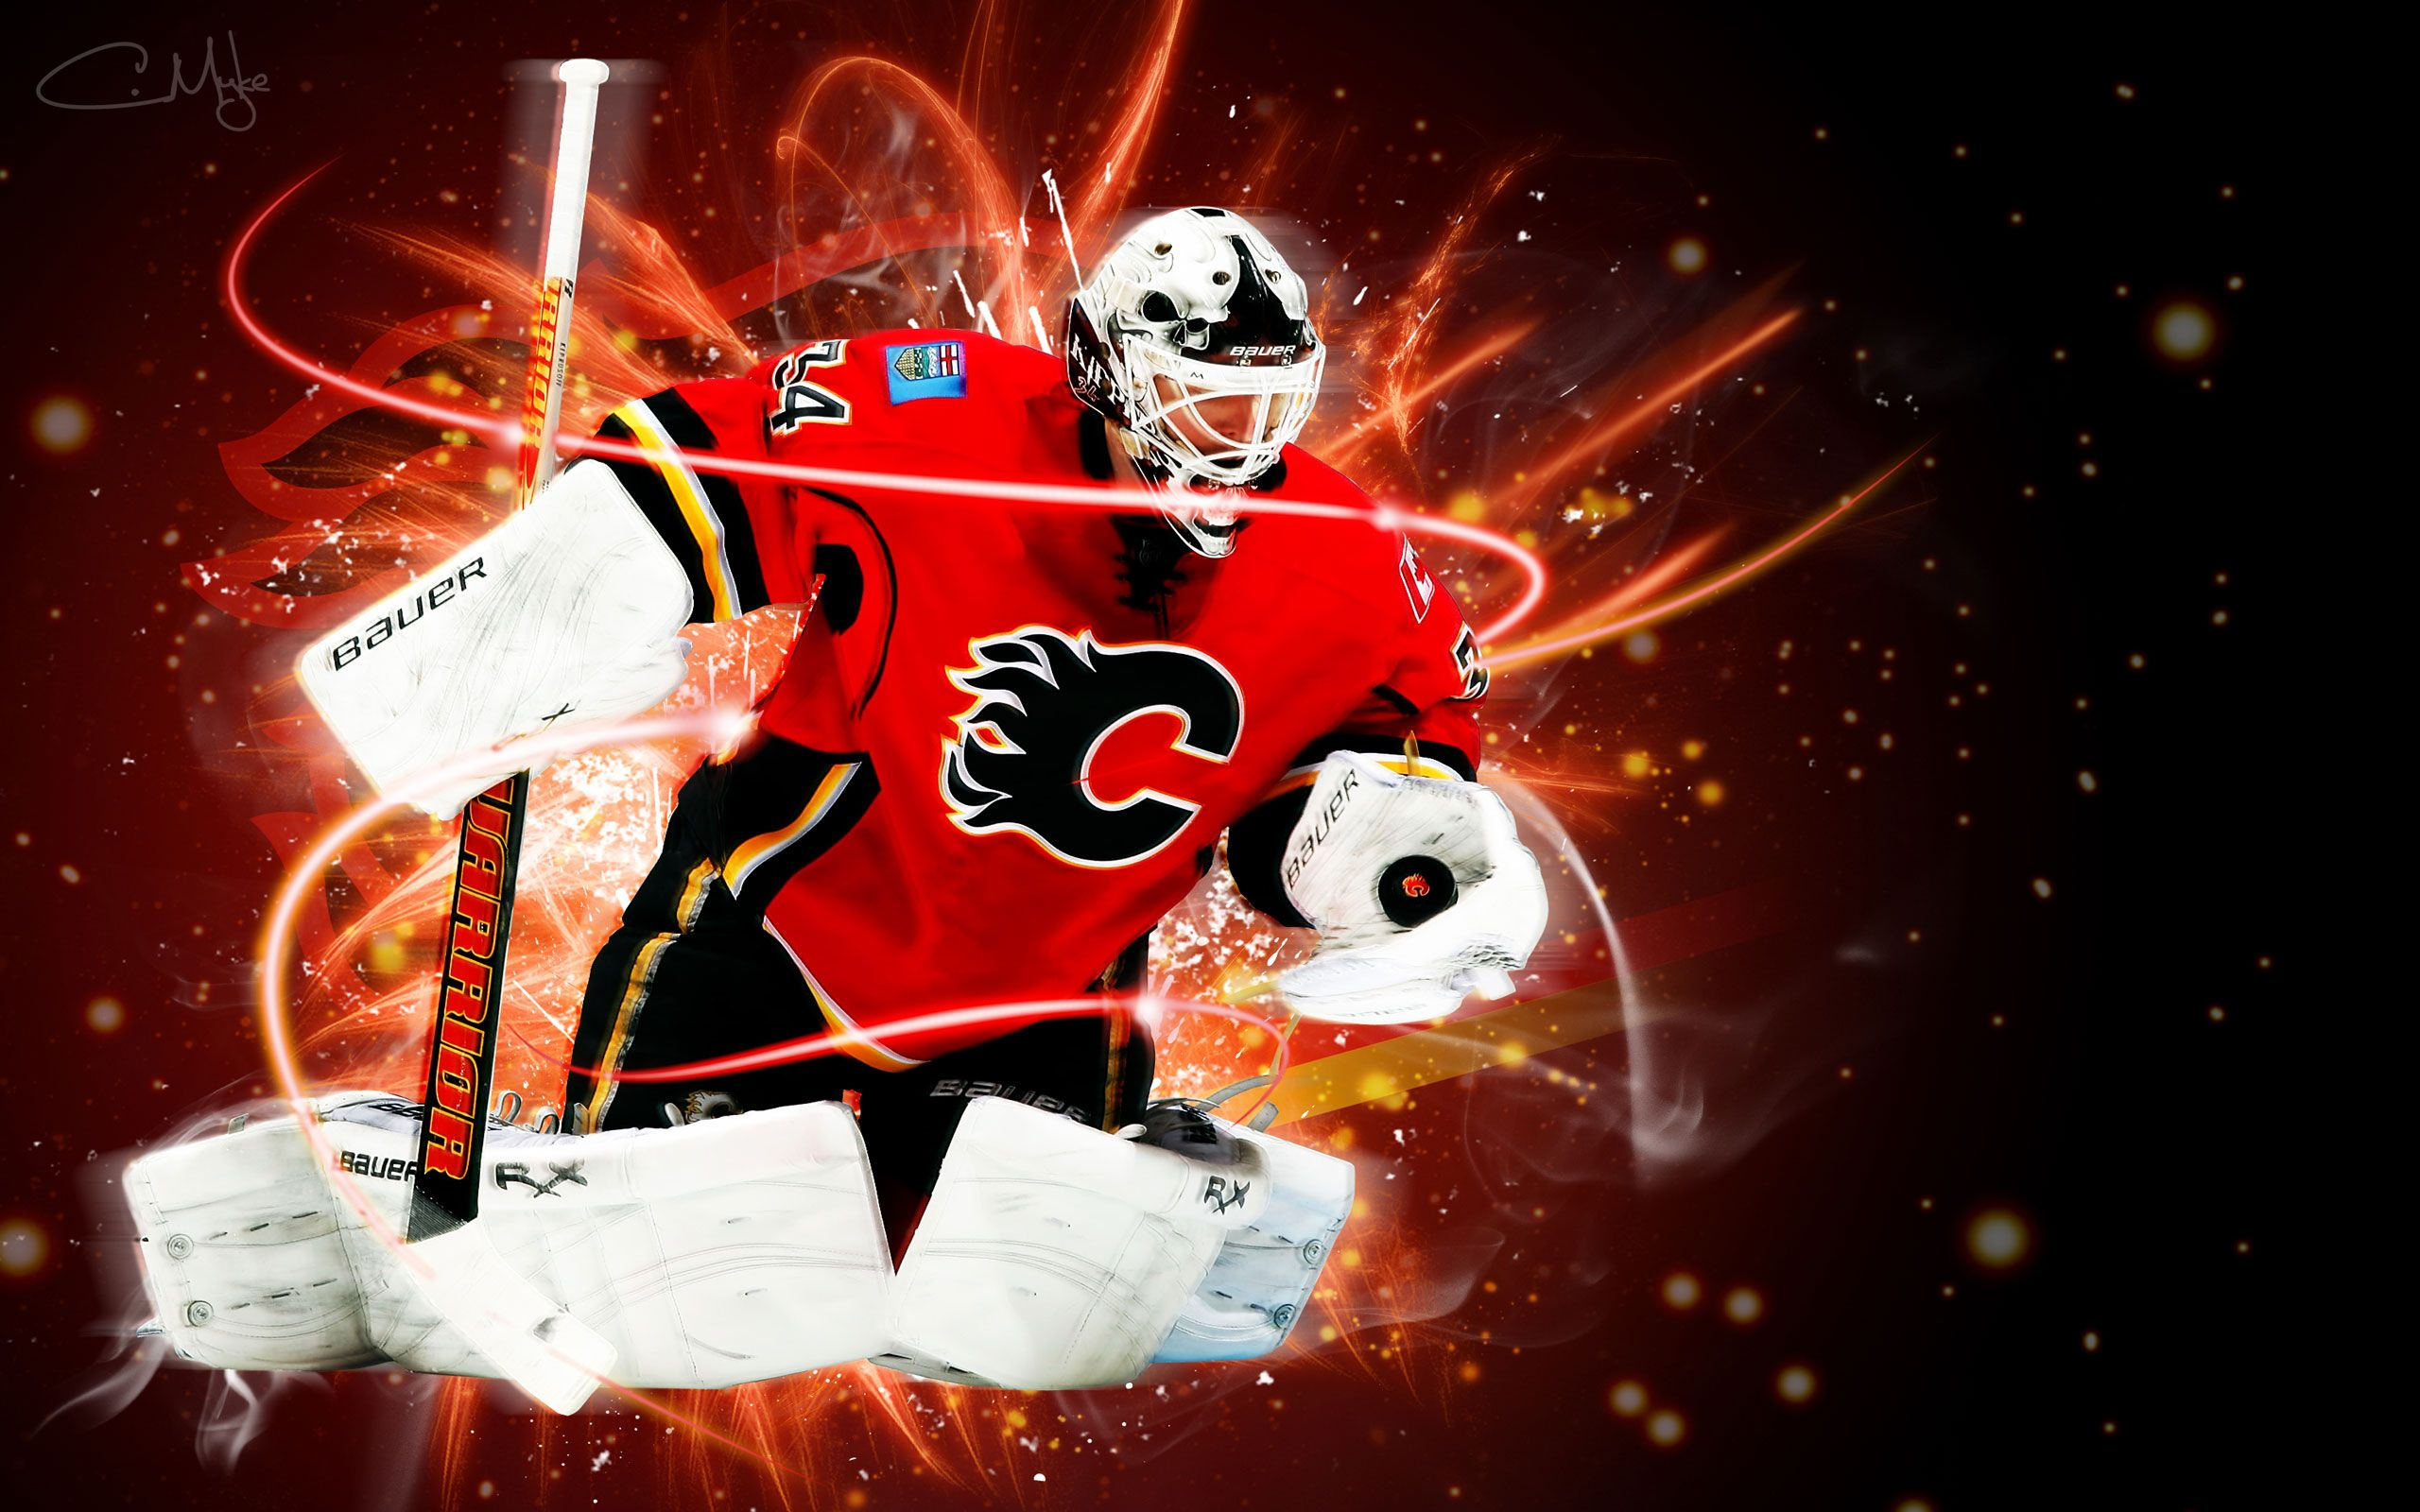 NHL Wallpapers   Miikka Kiprusoff Calgary Flames 2560x1600 wallpaper 2560x1600